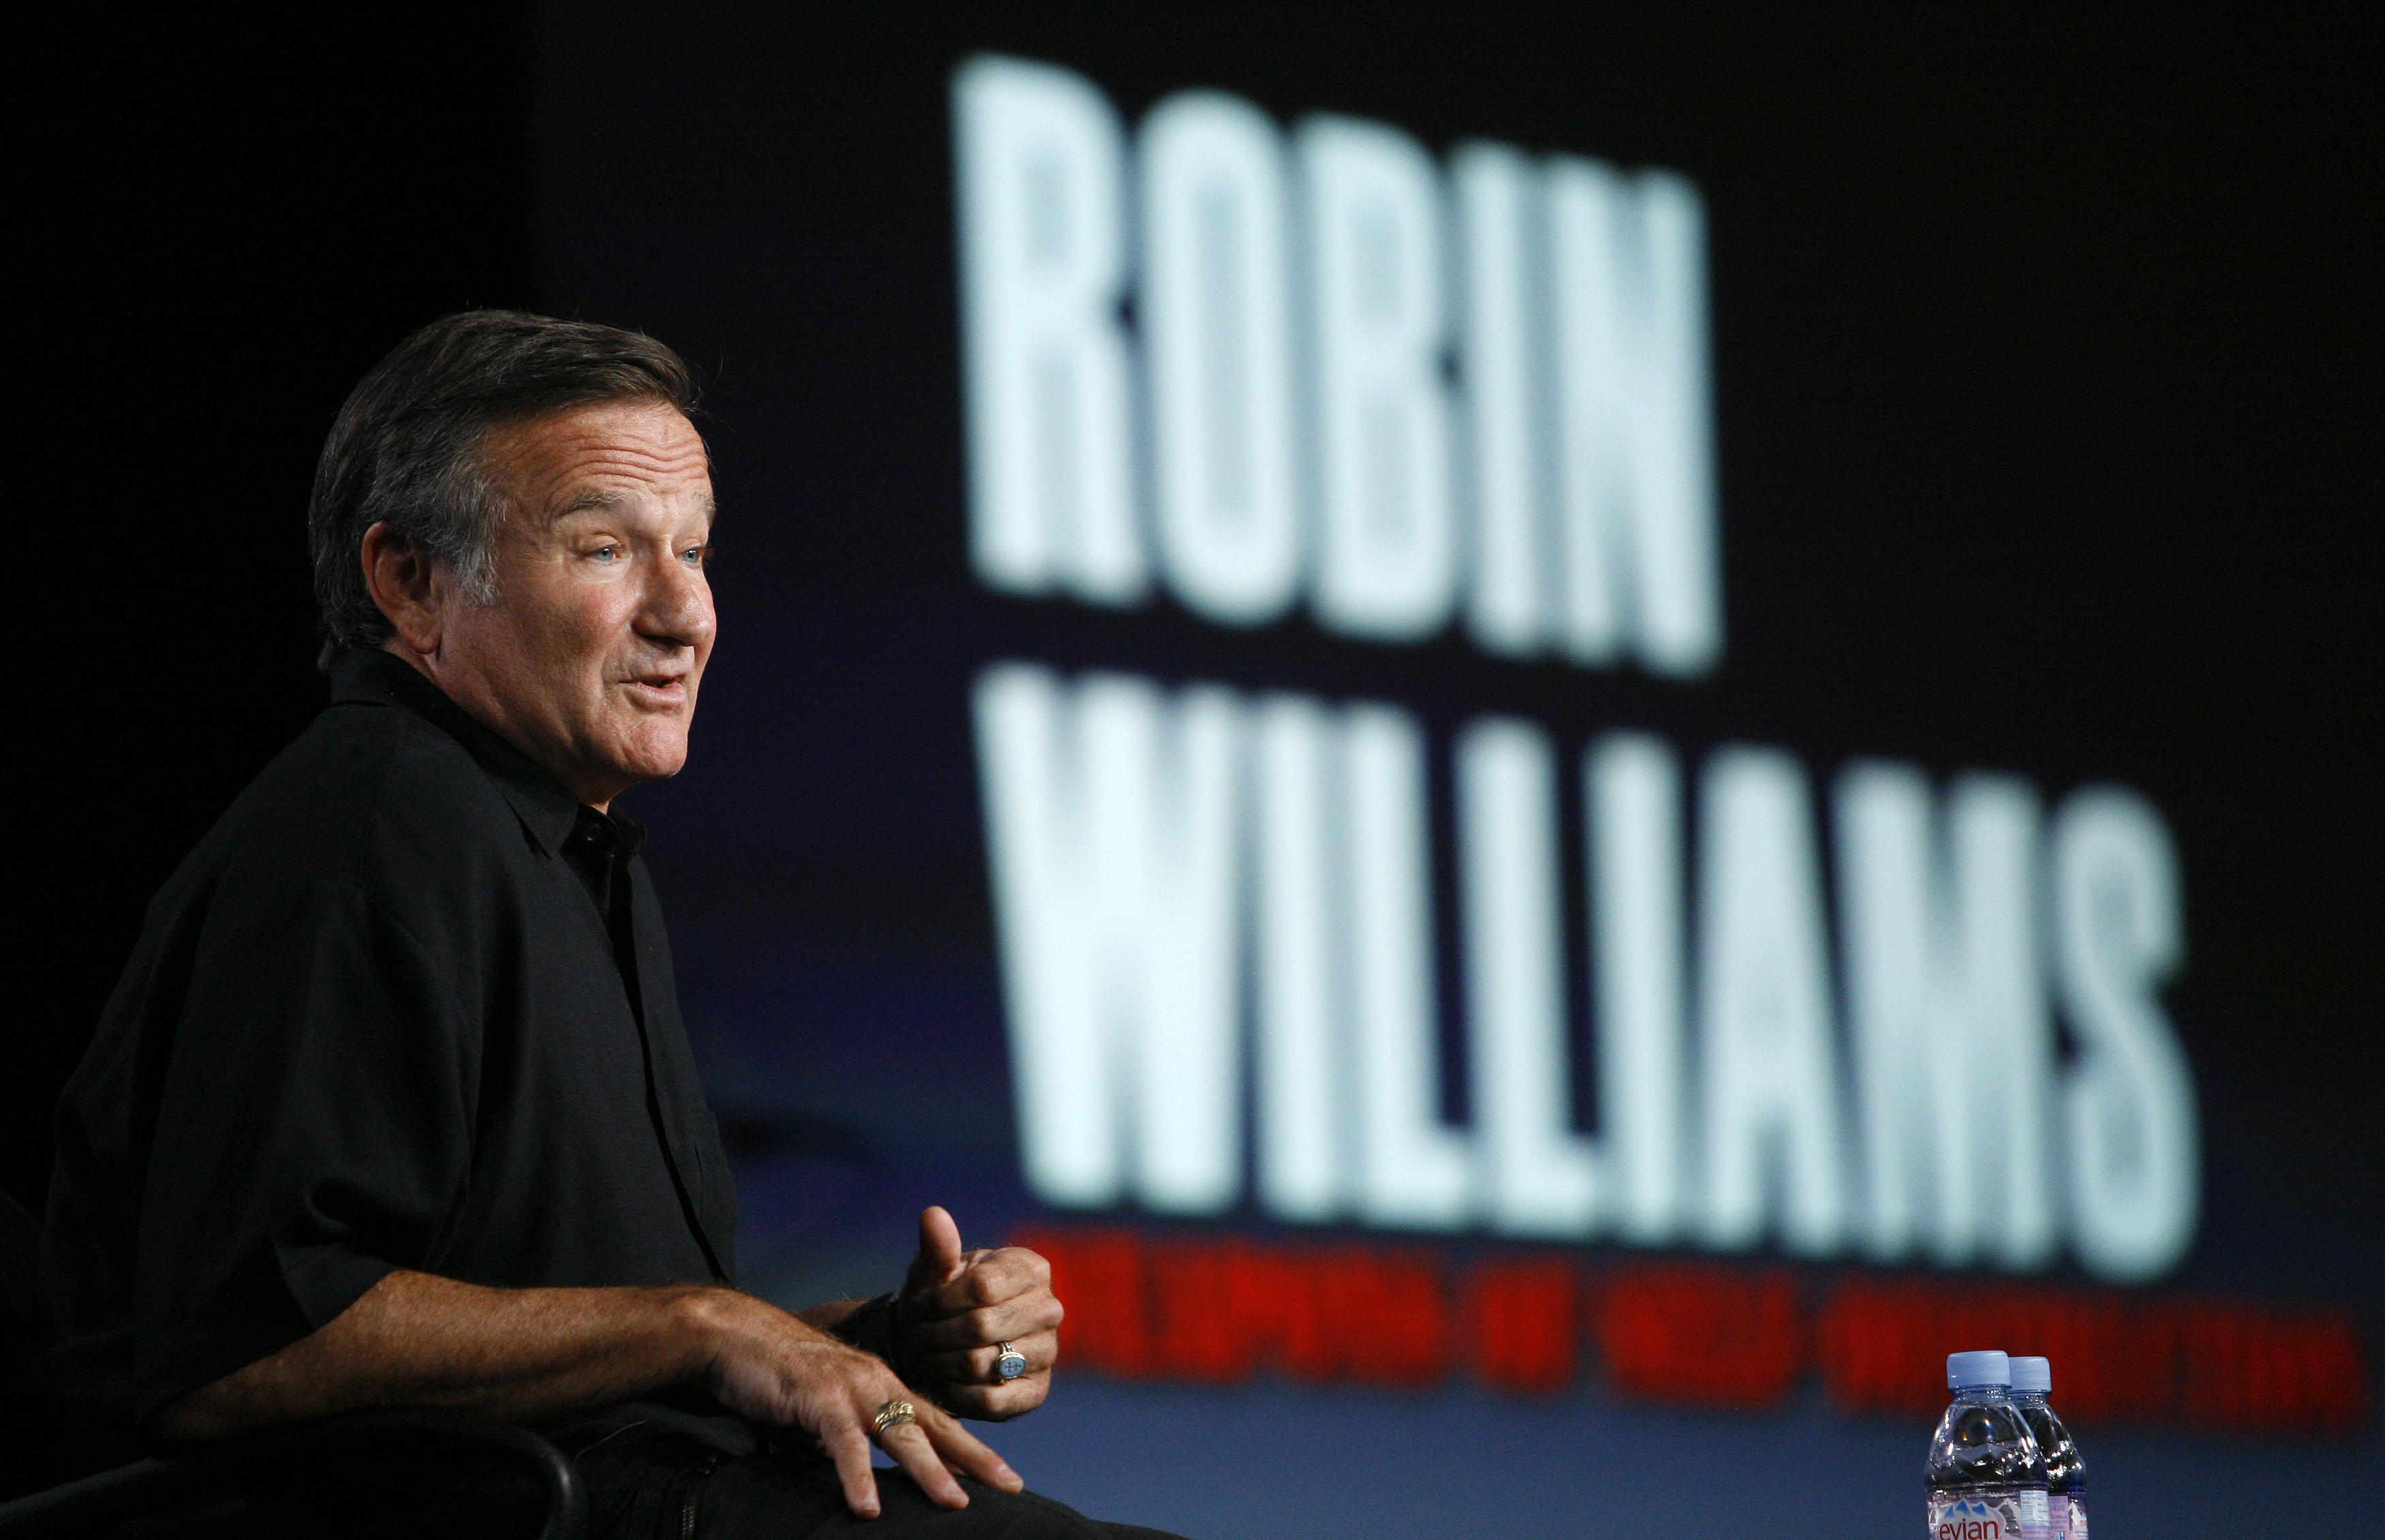 Robin William's best ad-lib moments